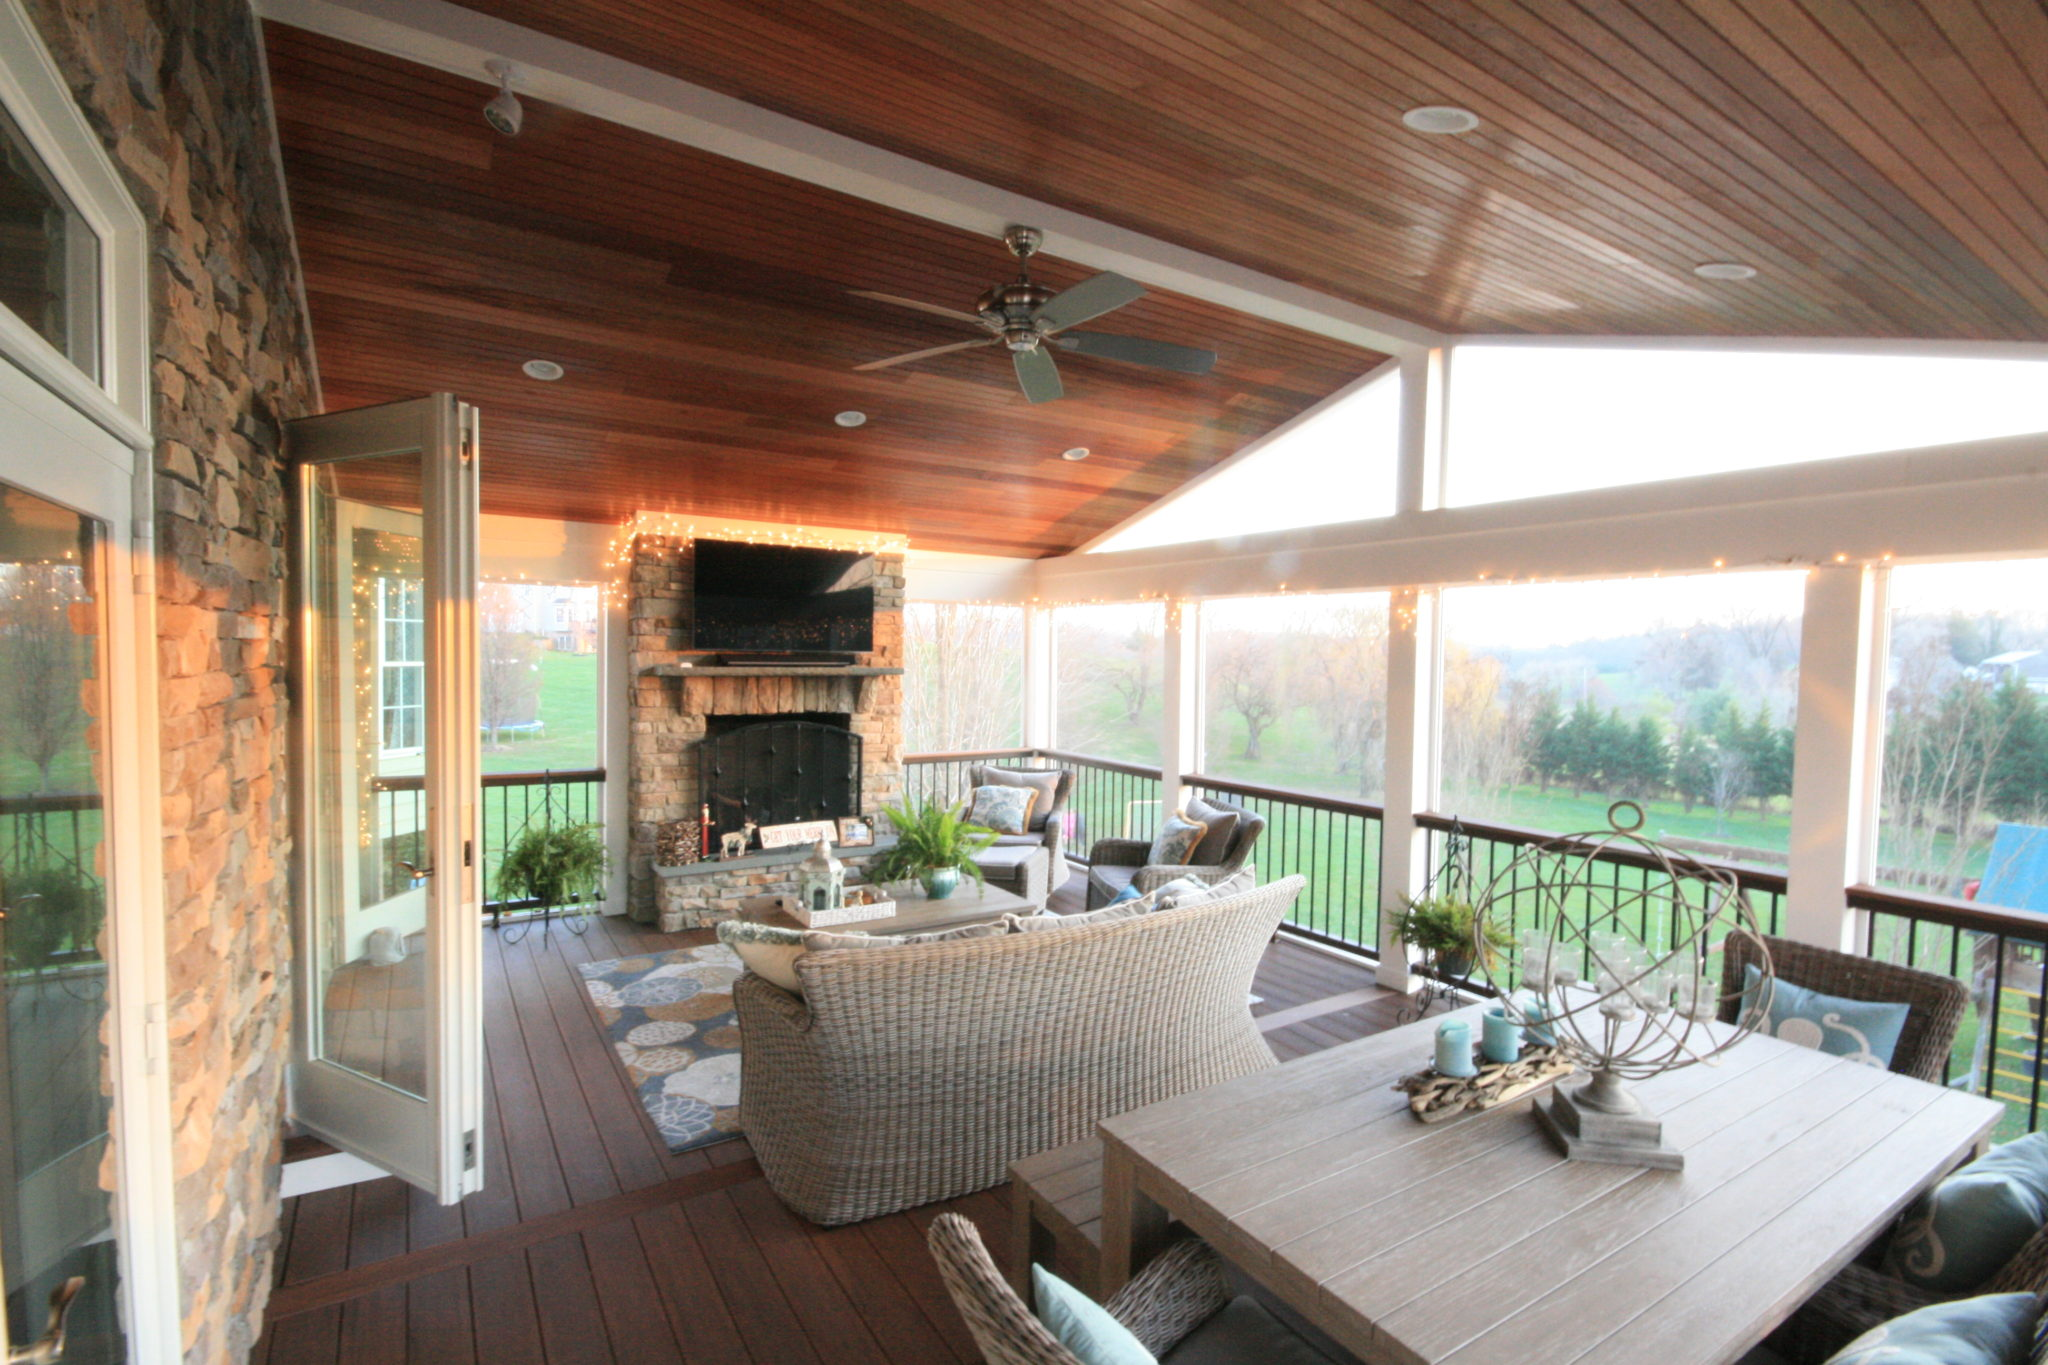 Maryland Screen Porch and Deck Contractor Builds Screen ... on Outdoor Gas Fireplace For Deck id=58364